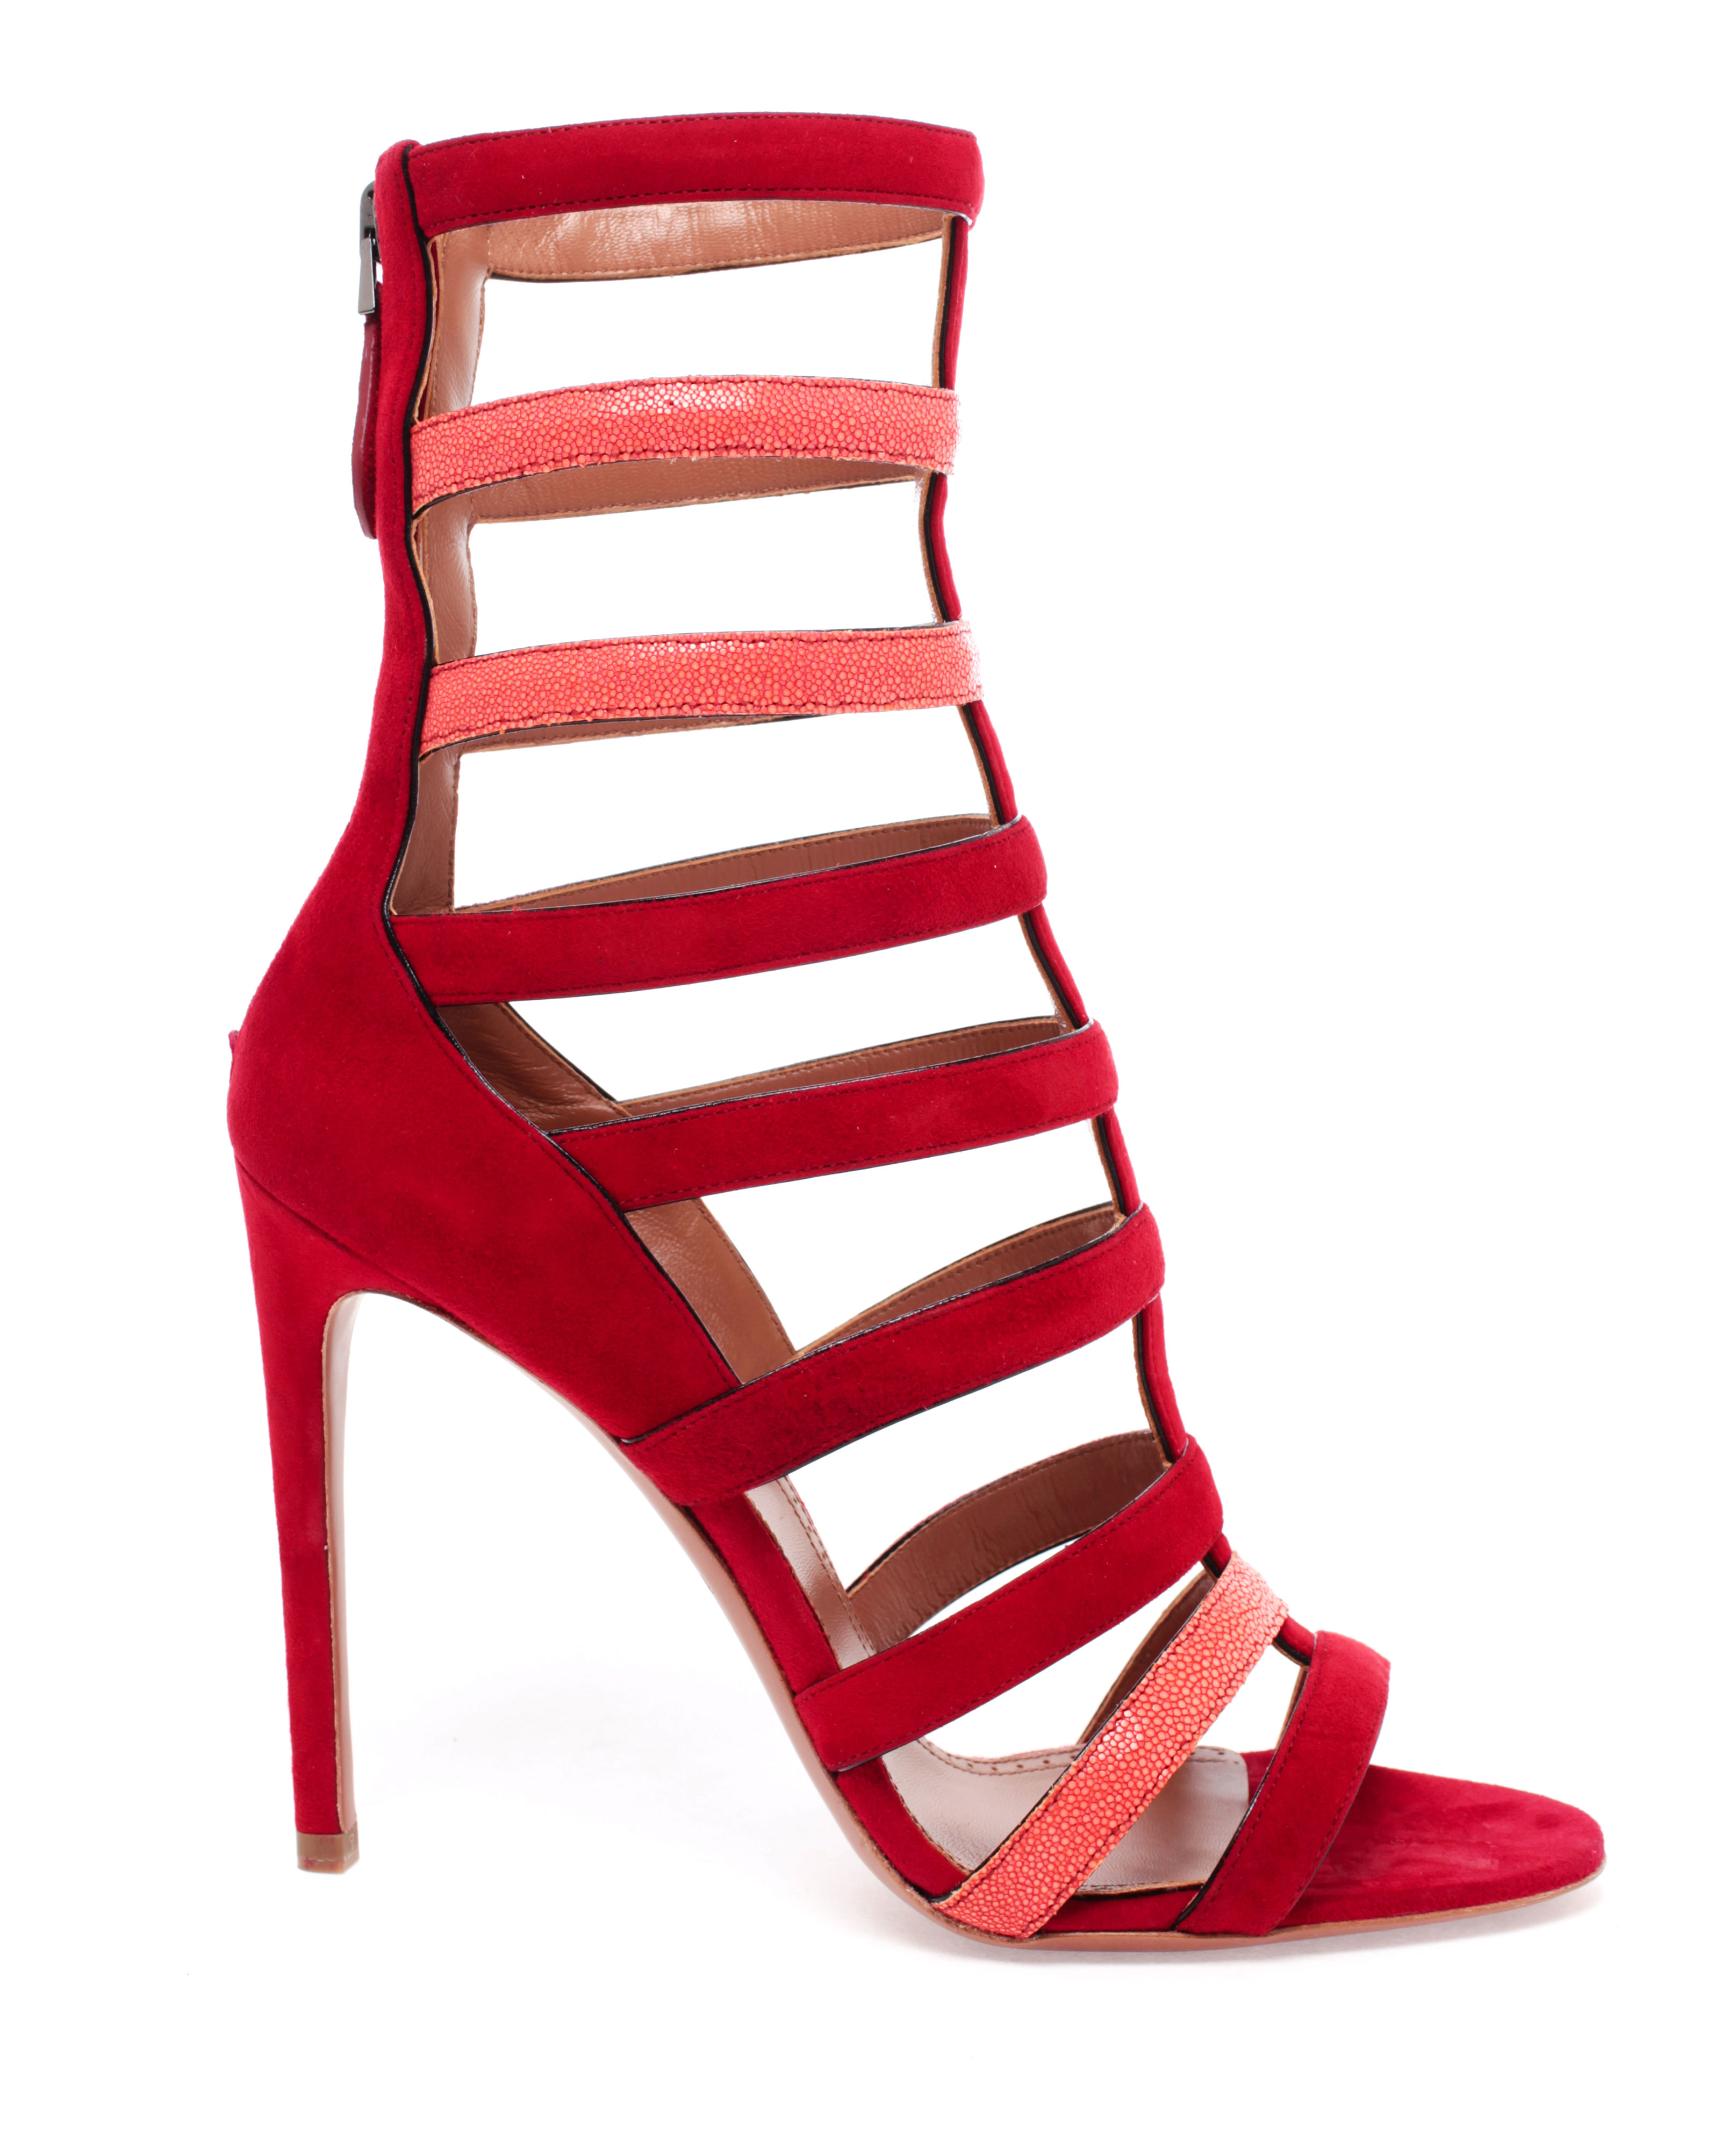 Alaia Red Shoes Alaia Red Strappy